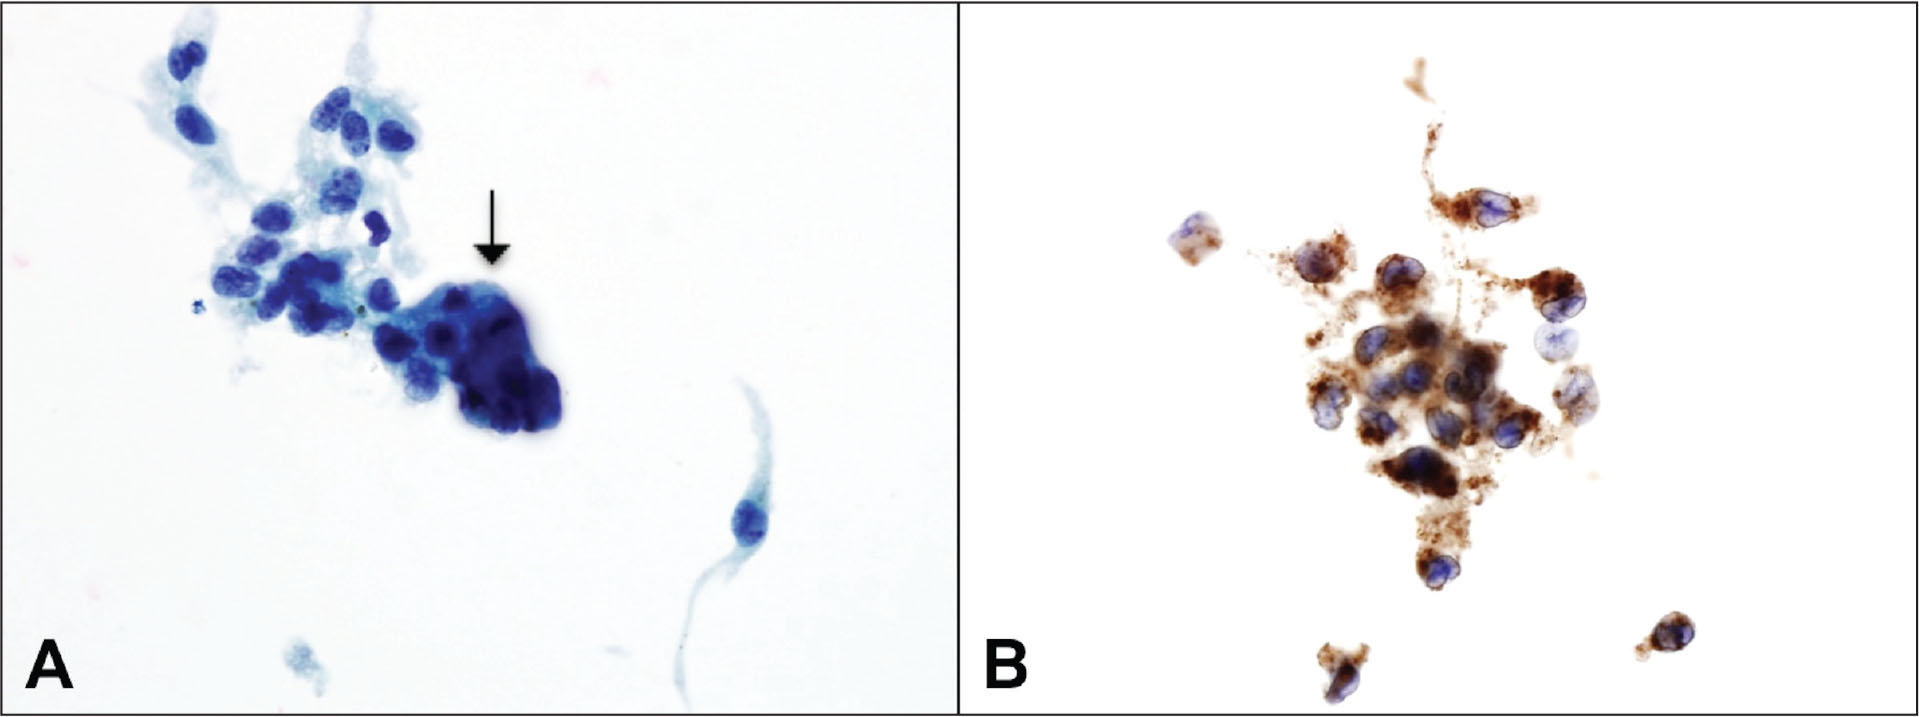 (A) Cytopathology showing lymphocytes and a giant cell (arrow). (B) Immunocytochemical stain for CD68, a histiocyte marker, was positive, consistent with iris juvenile xanthogranuloma (original magnification ×100).